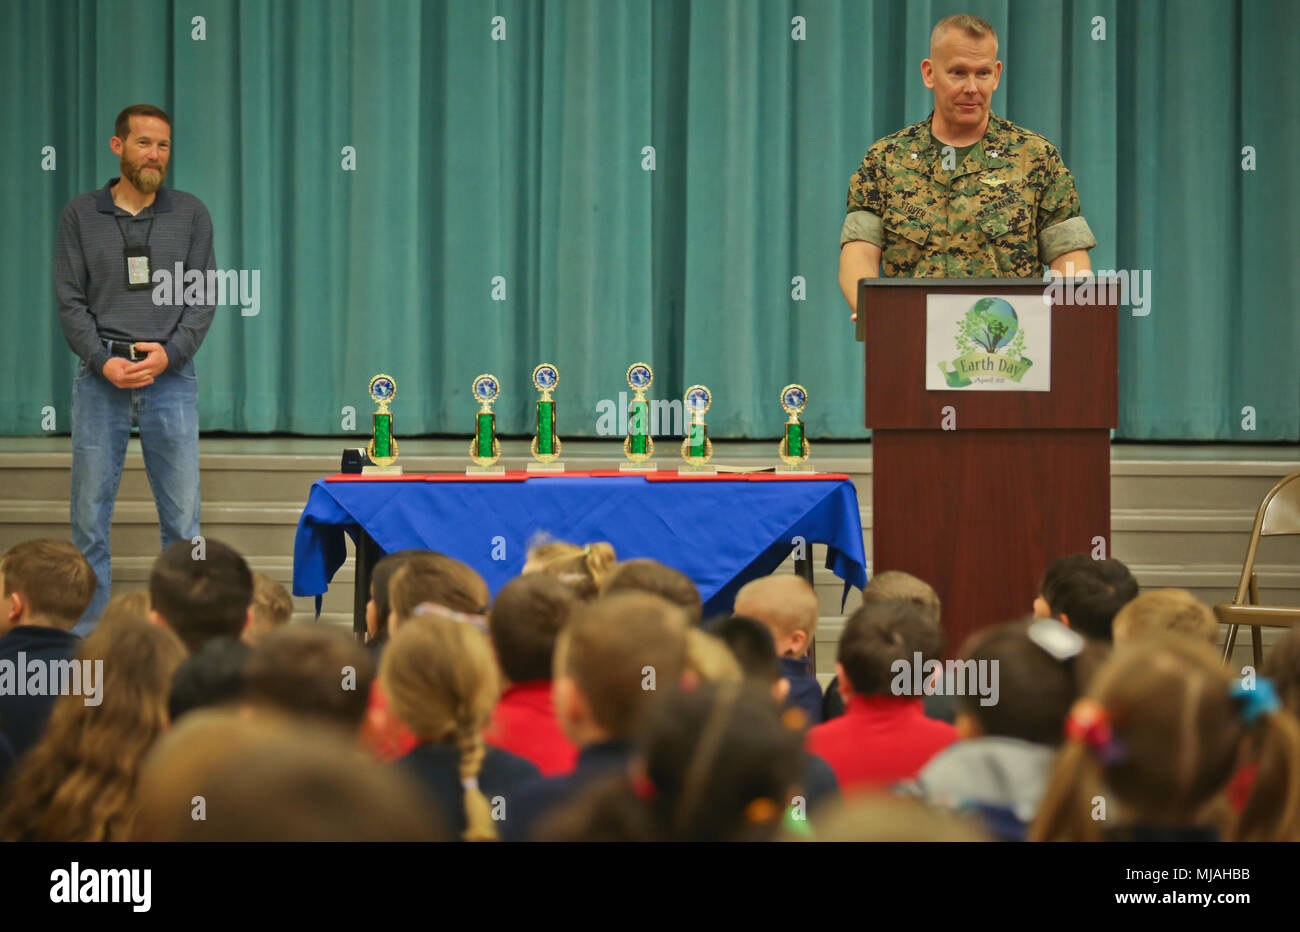 """Lt. Col. Matthew Stover adresses students during the Earth Day poster award ceremony aboard Laurel Bay, April 24. Children from Charles F. Bolden Elementary School and Elliott Elementary School competed in the poster contest as a way to educate and involve children on environmental management. This year's theme for the contest was """"Give a hoot, Don't Pollute."""" April 22 has been designated as Earth Day since 1970 and across the Marine Corps, installations are participating in Earth Day activities to help remind all Marines, Sailors, civilians, and their families that their everyday actions help - Stock Image"""